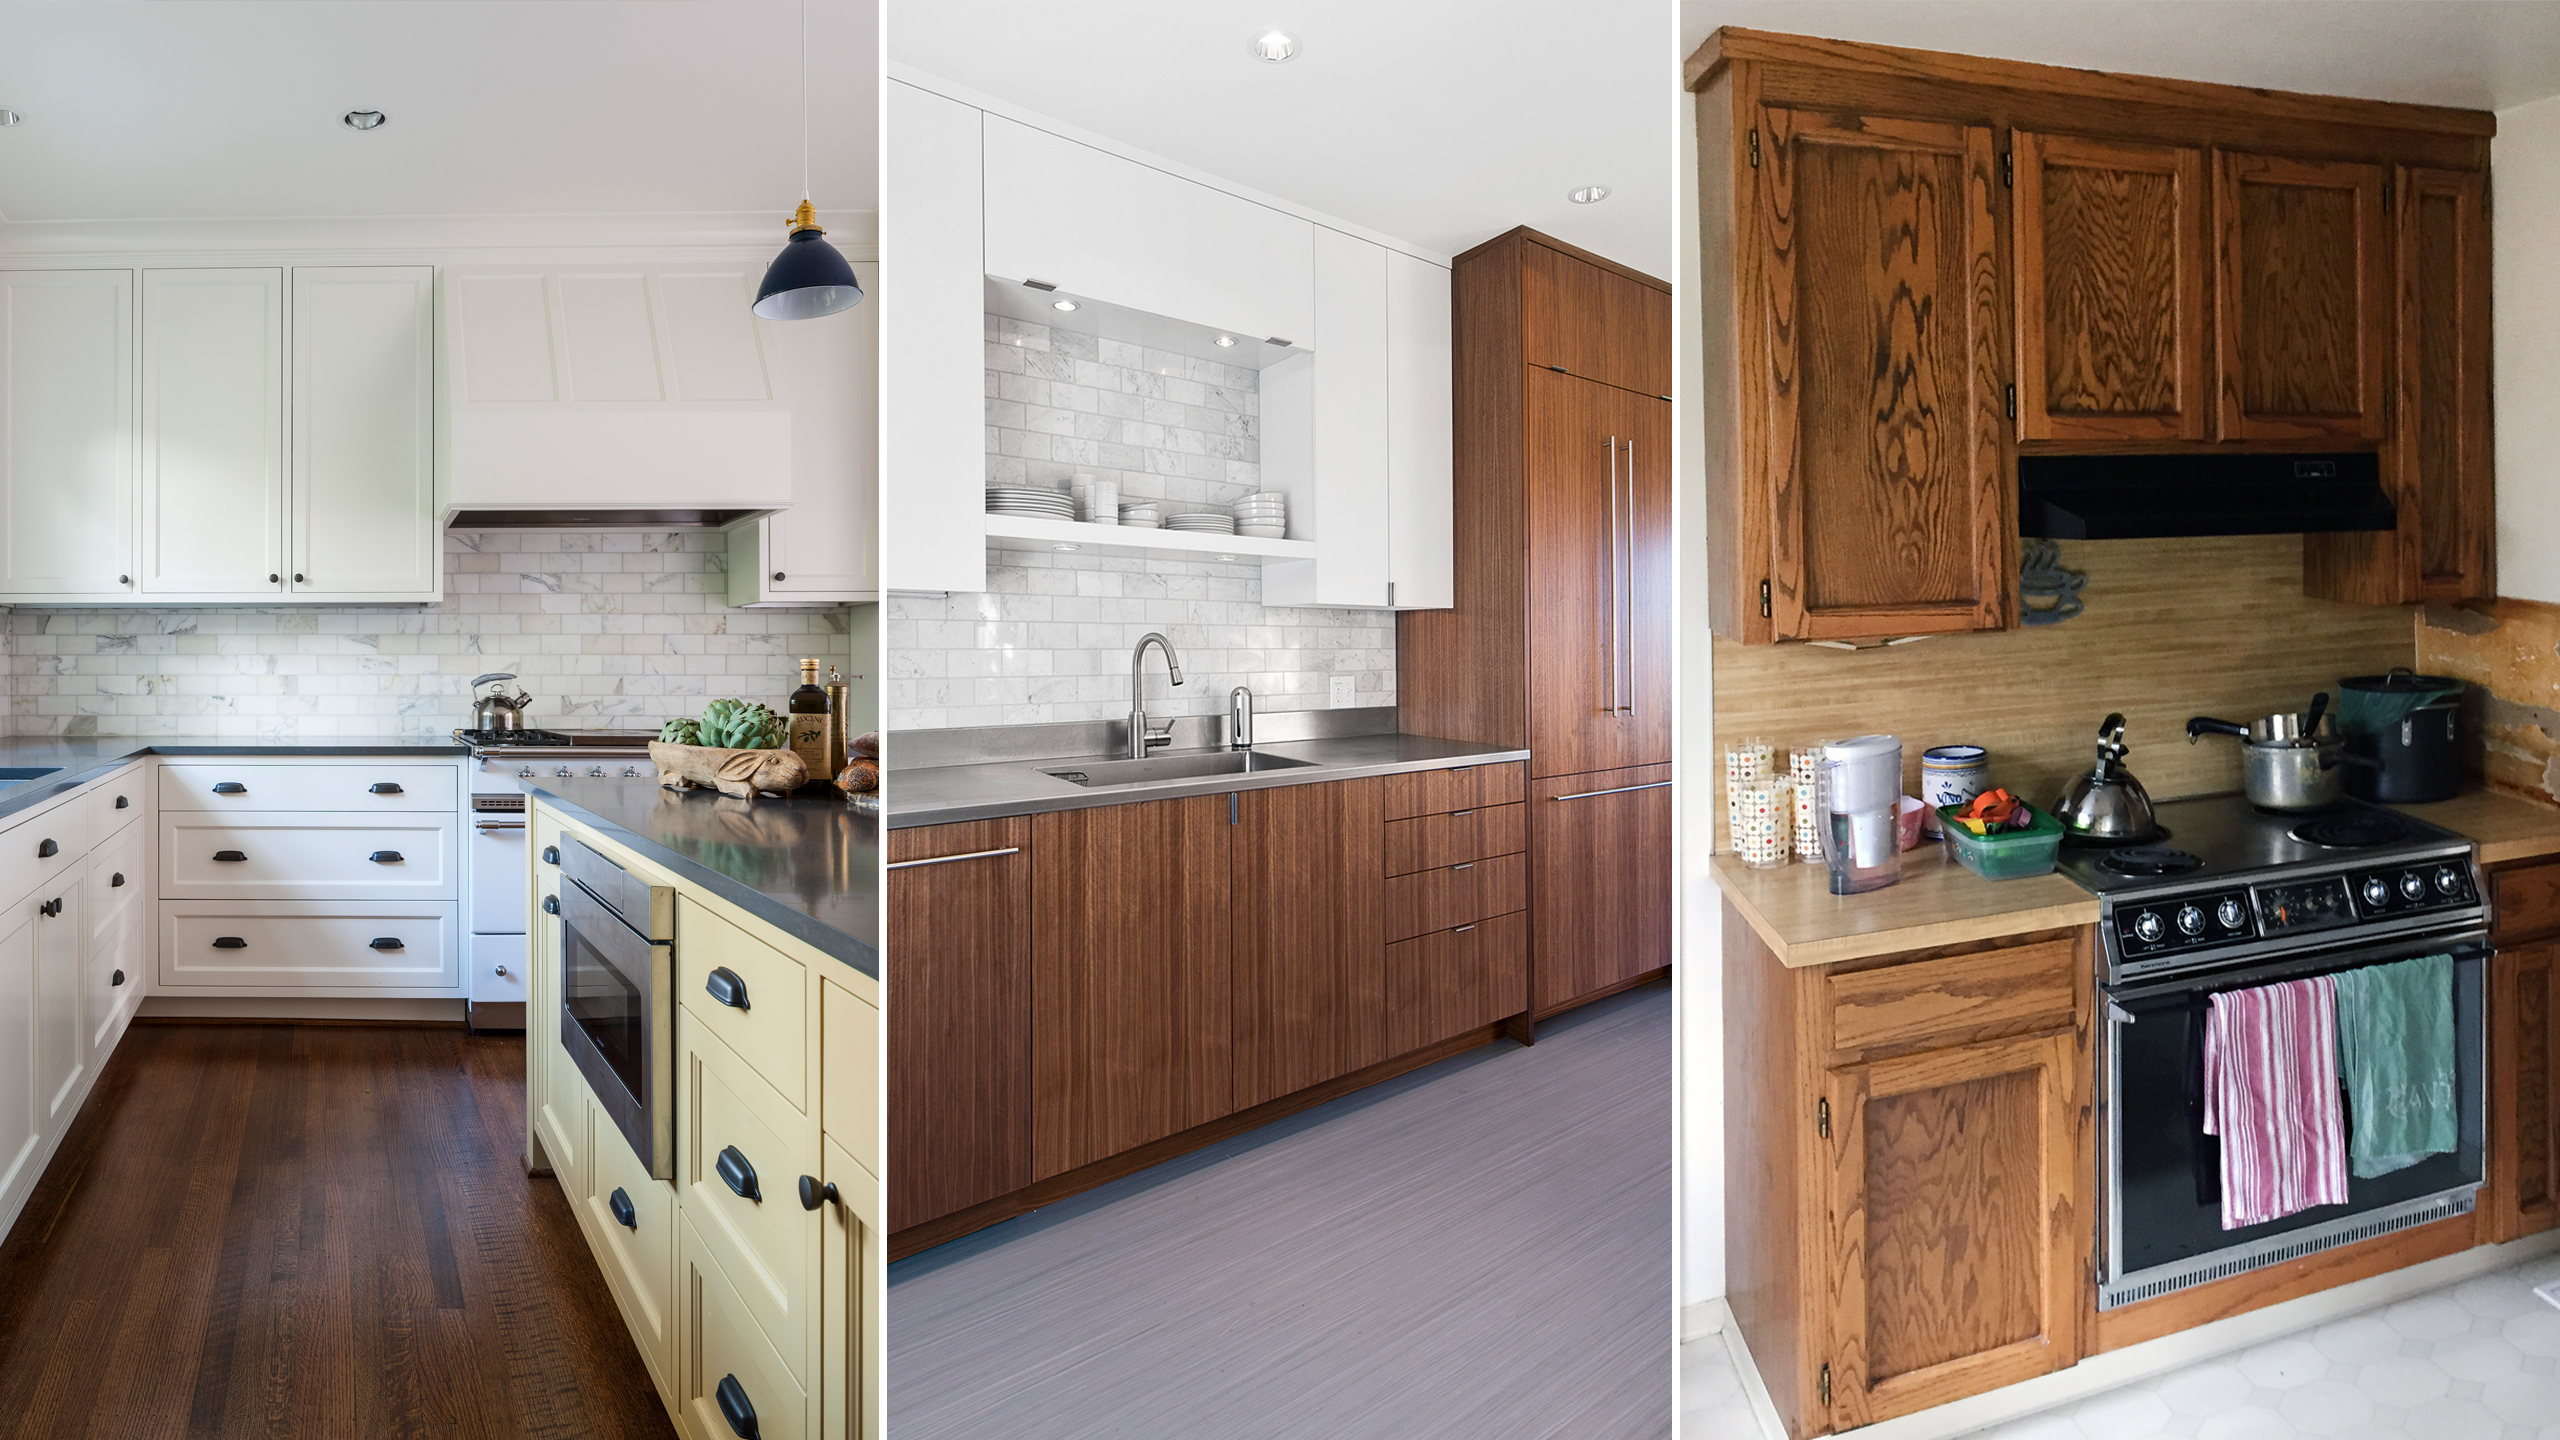 Three Kinds of Cabinets: Flush Inset, Flush Overlay, and Overlay – Cabinet Types – Board & Vellum